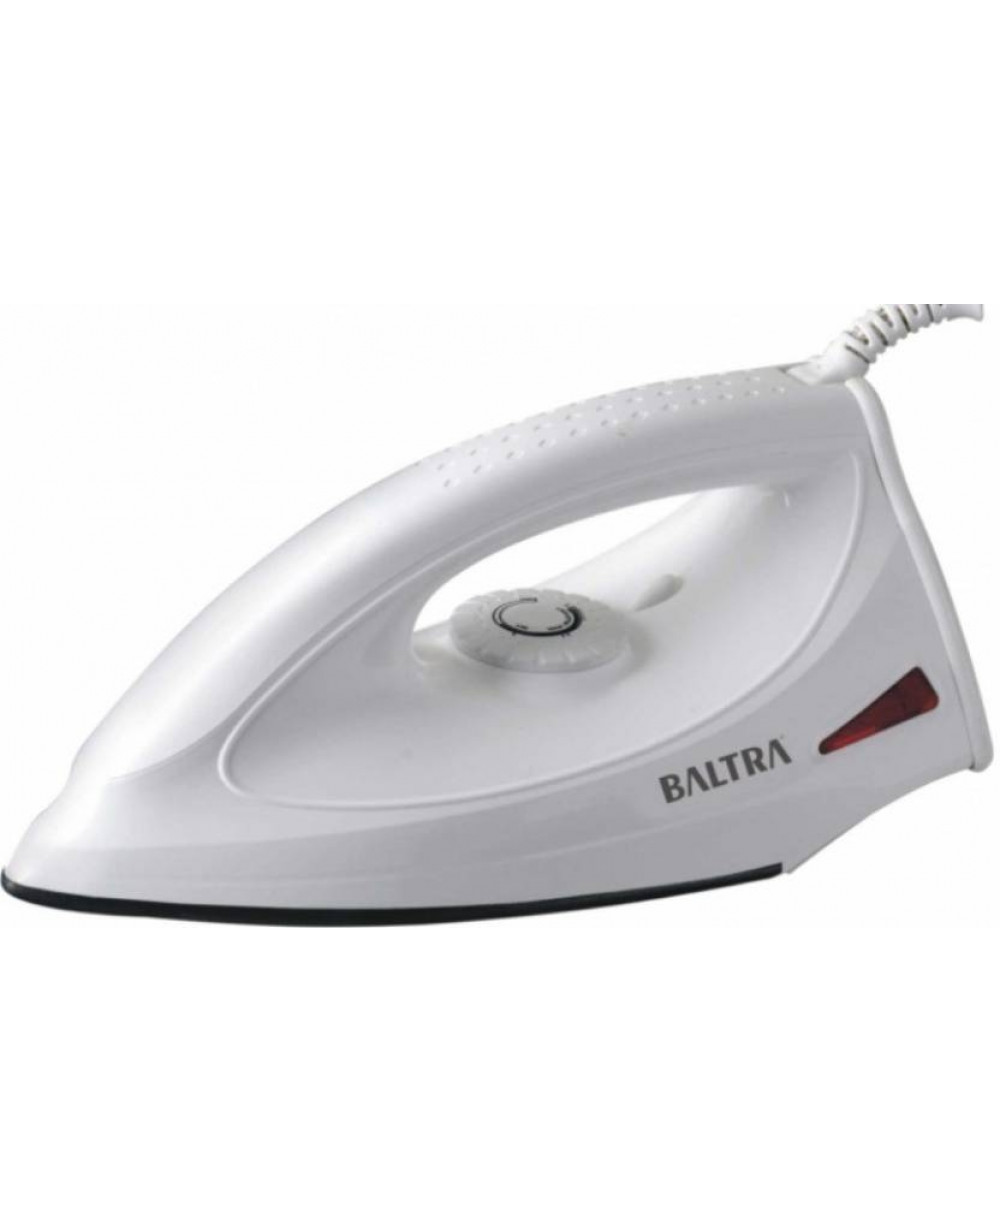 Baltra Dry Iron (REAL)